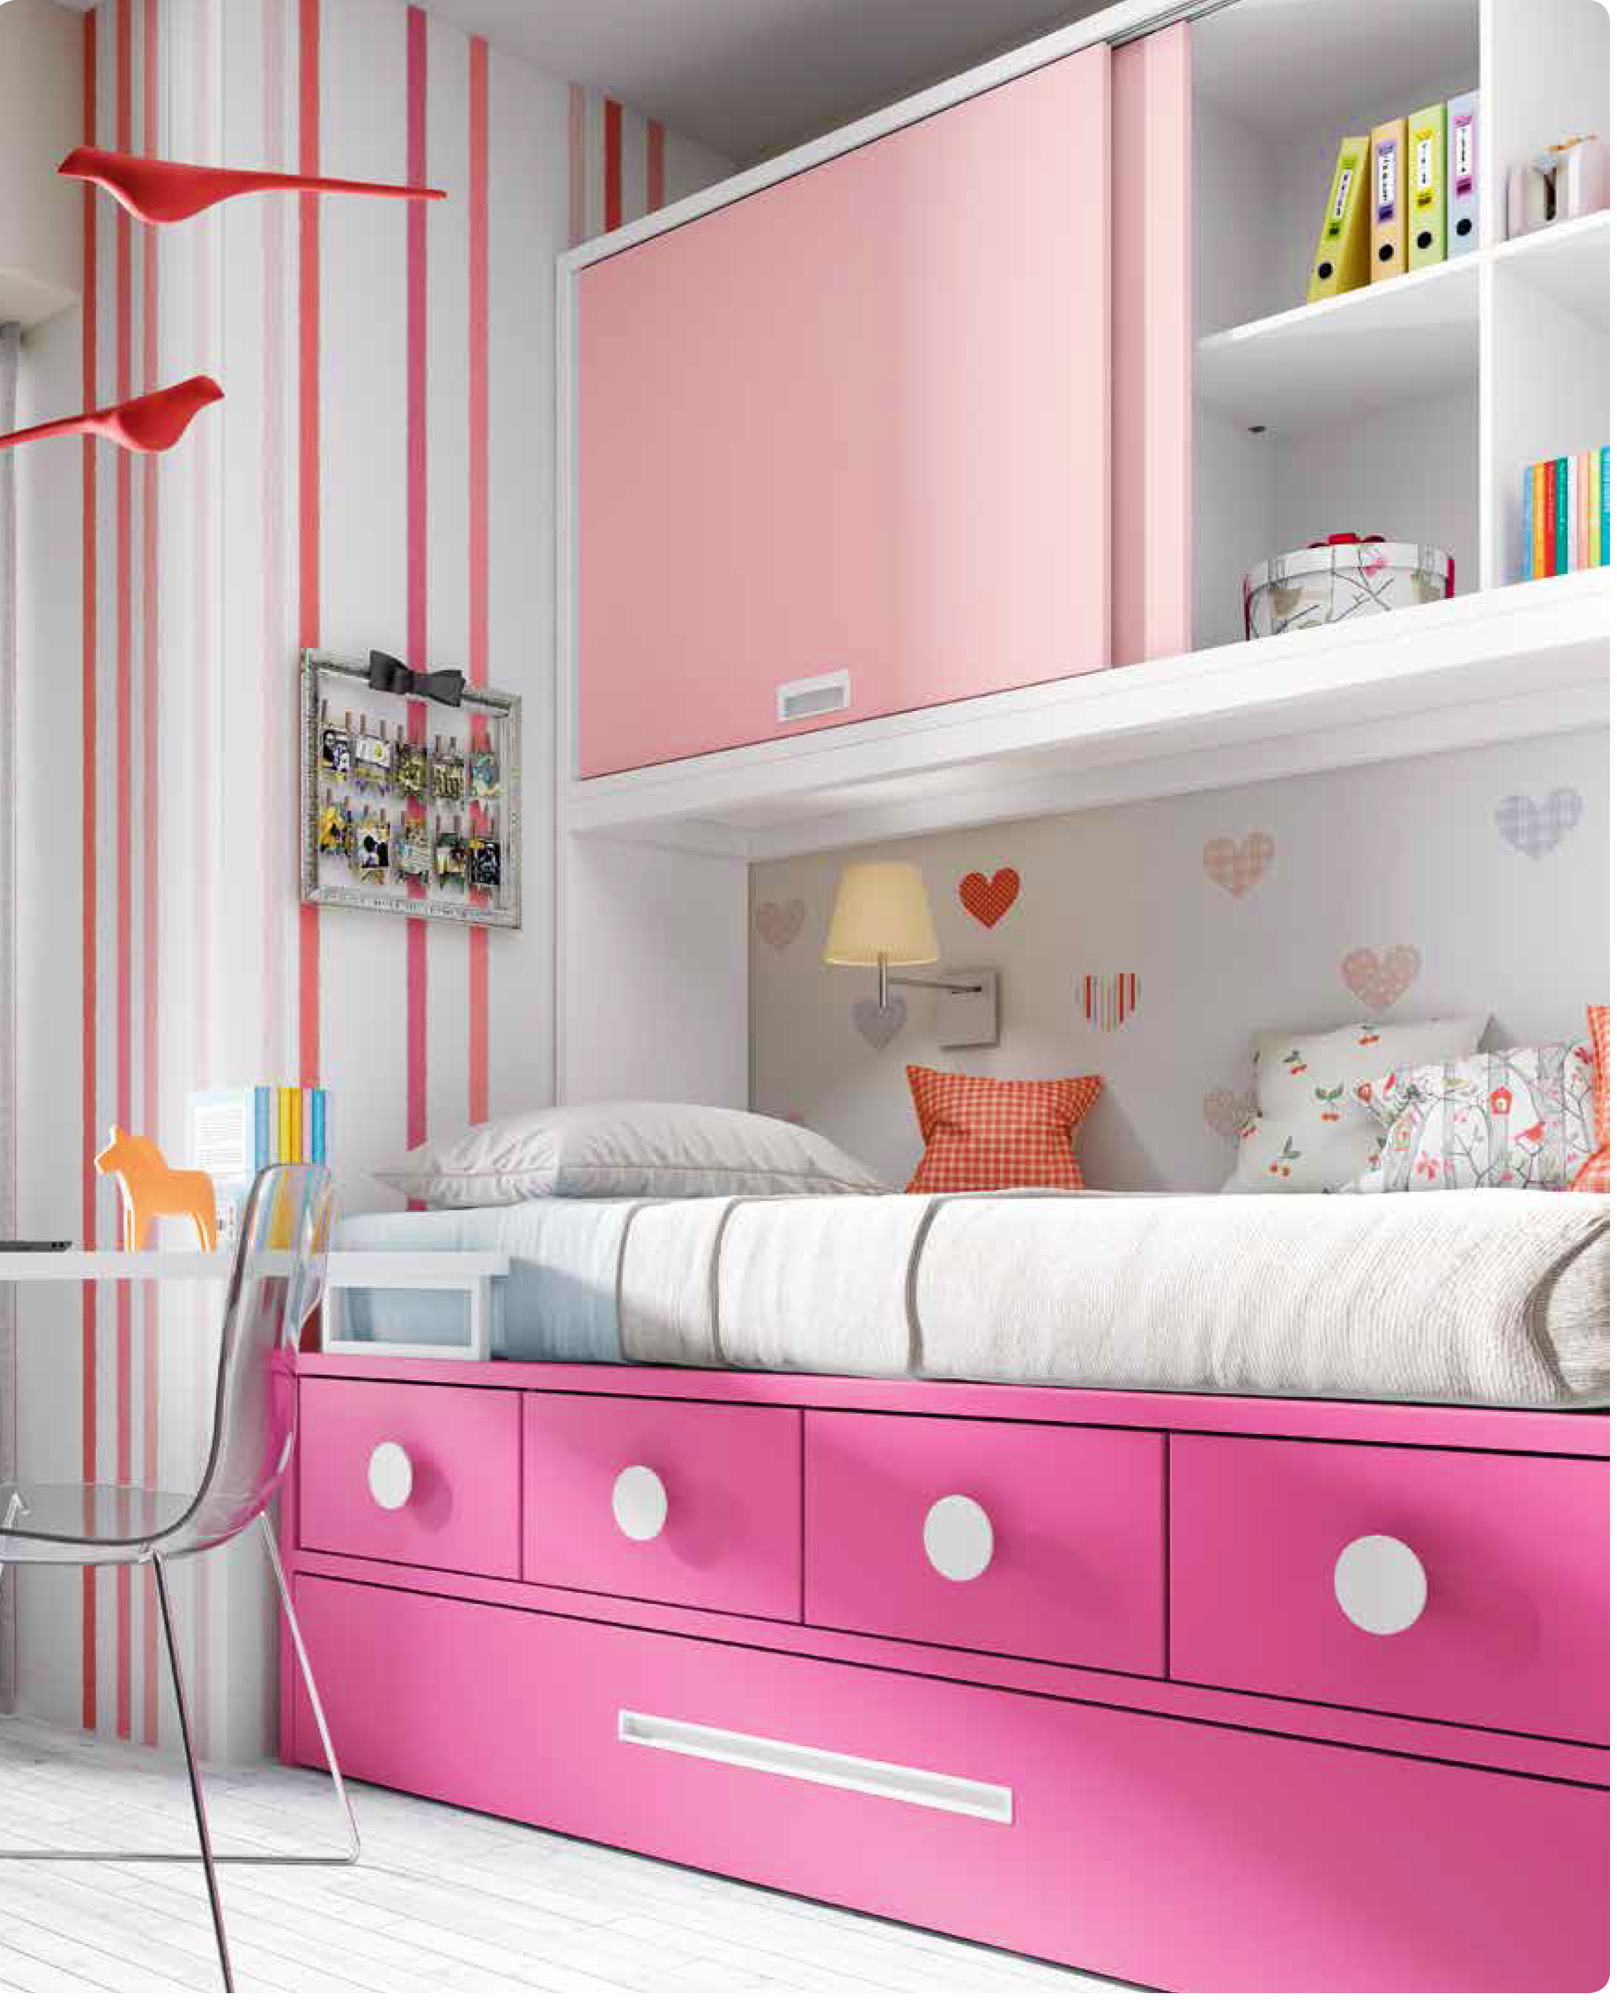 chambre enfant sur mesure ou un lit sur mesure plus cher. Black Bedroom Furniture Sets. Home Design Ideas